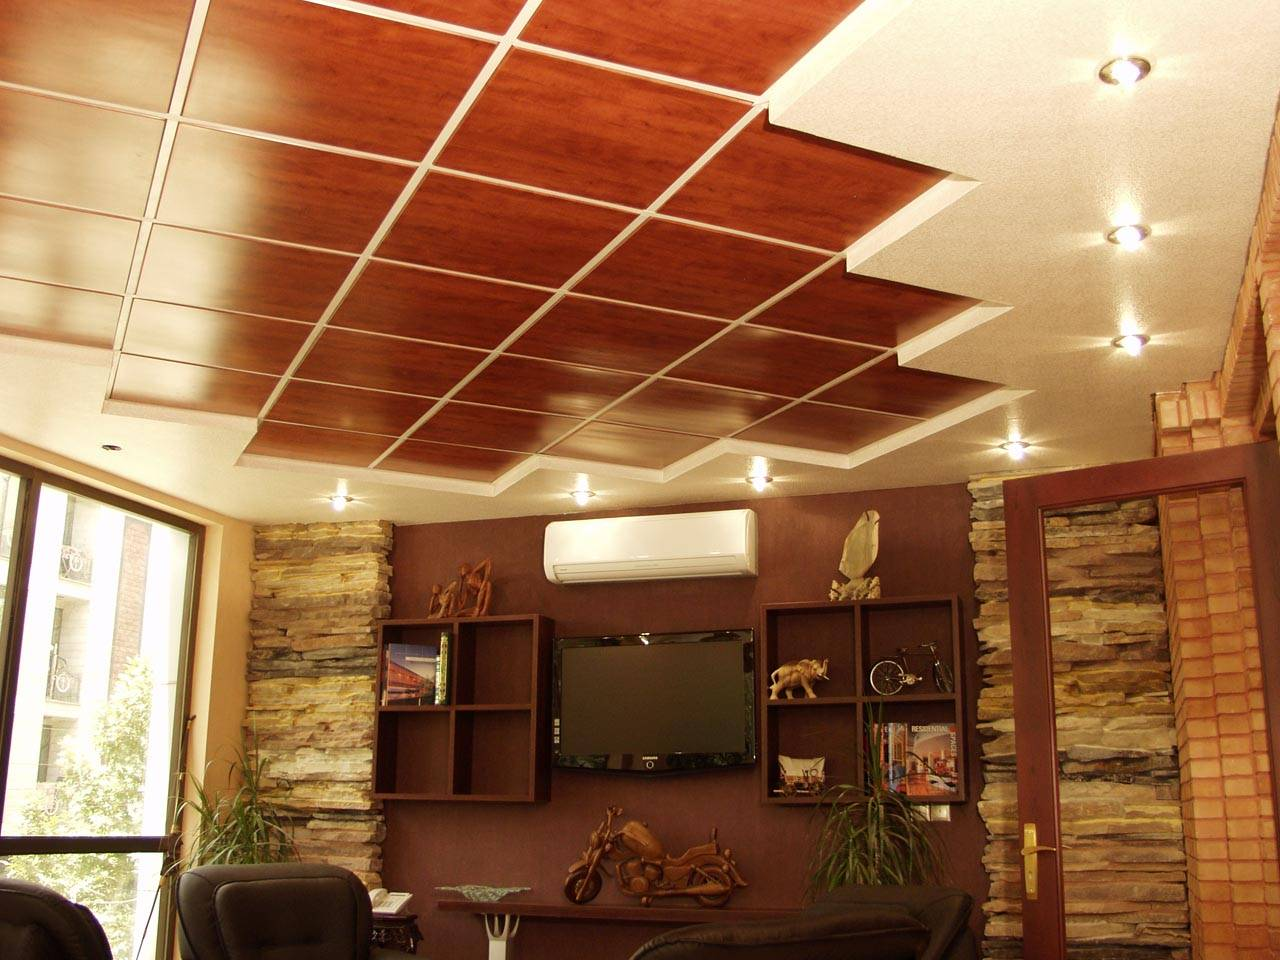 FALSE CEILING TILES Ceiling Systems